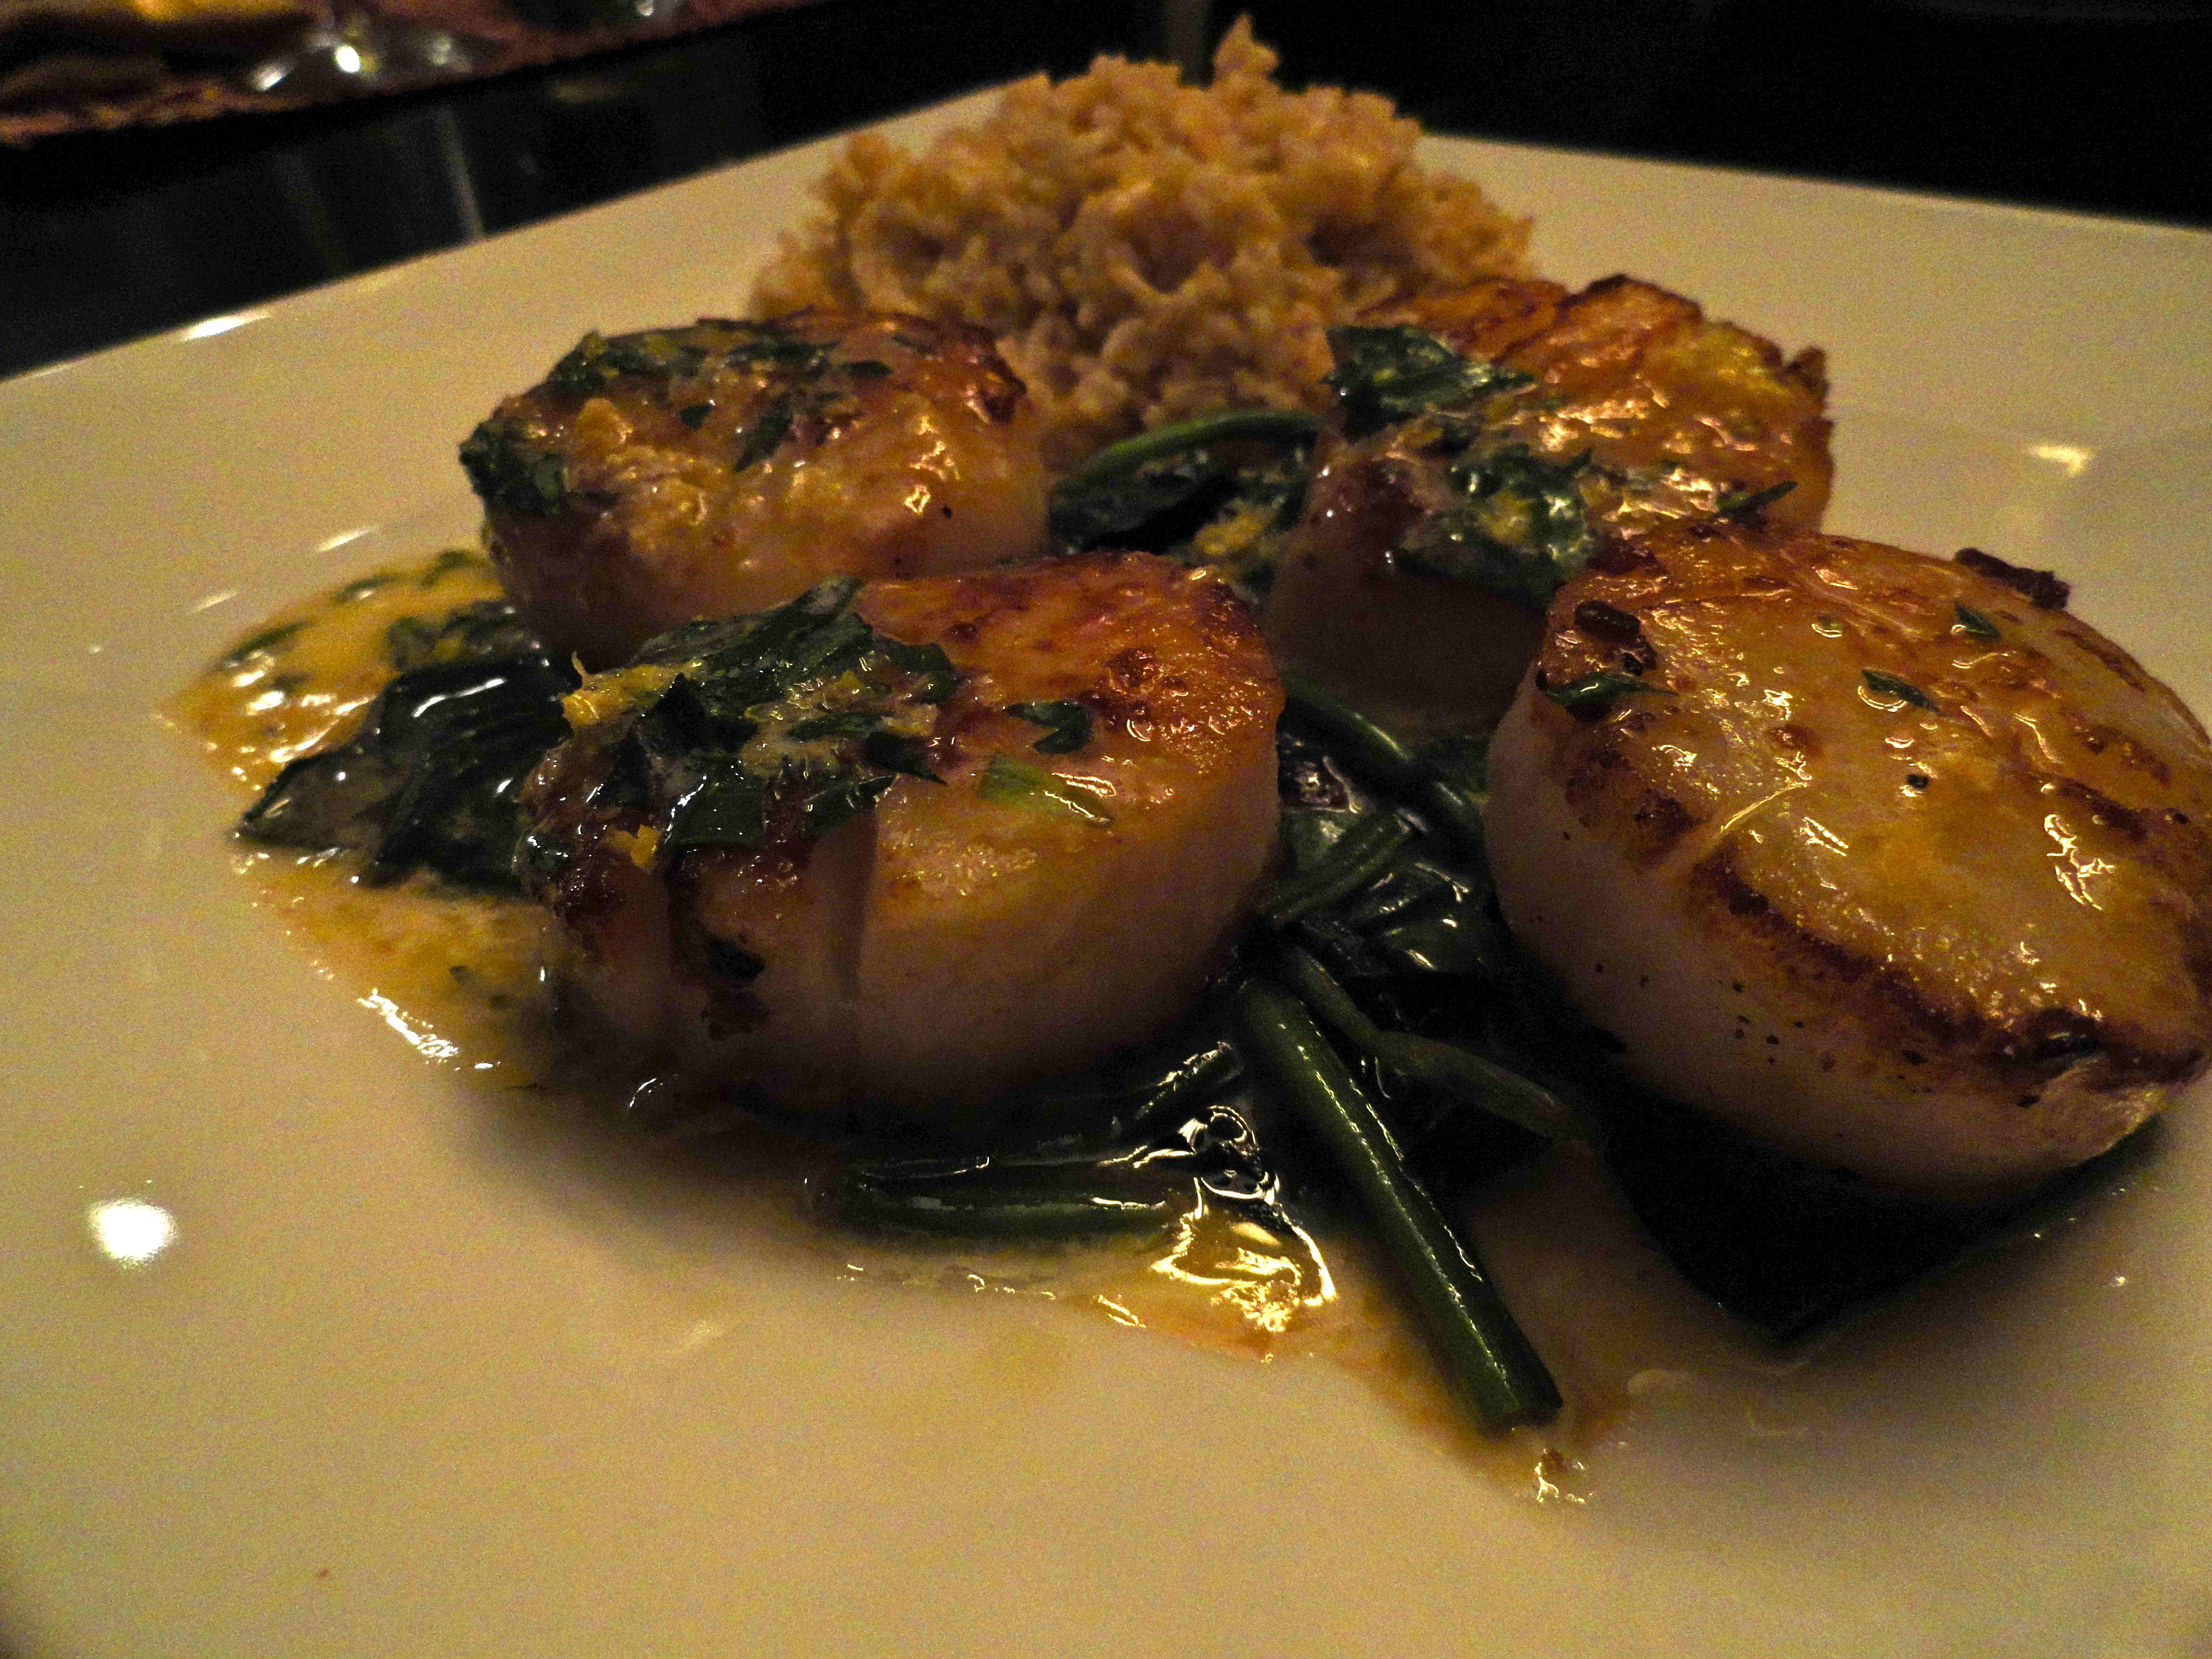 Scallops with Tarragon Butter Sauce | becoming pigzilla